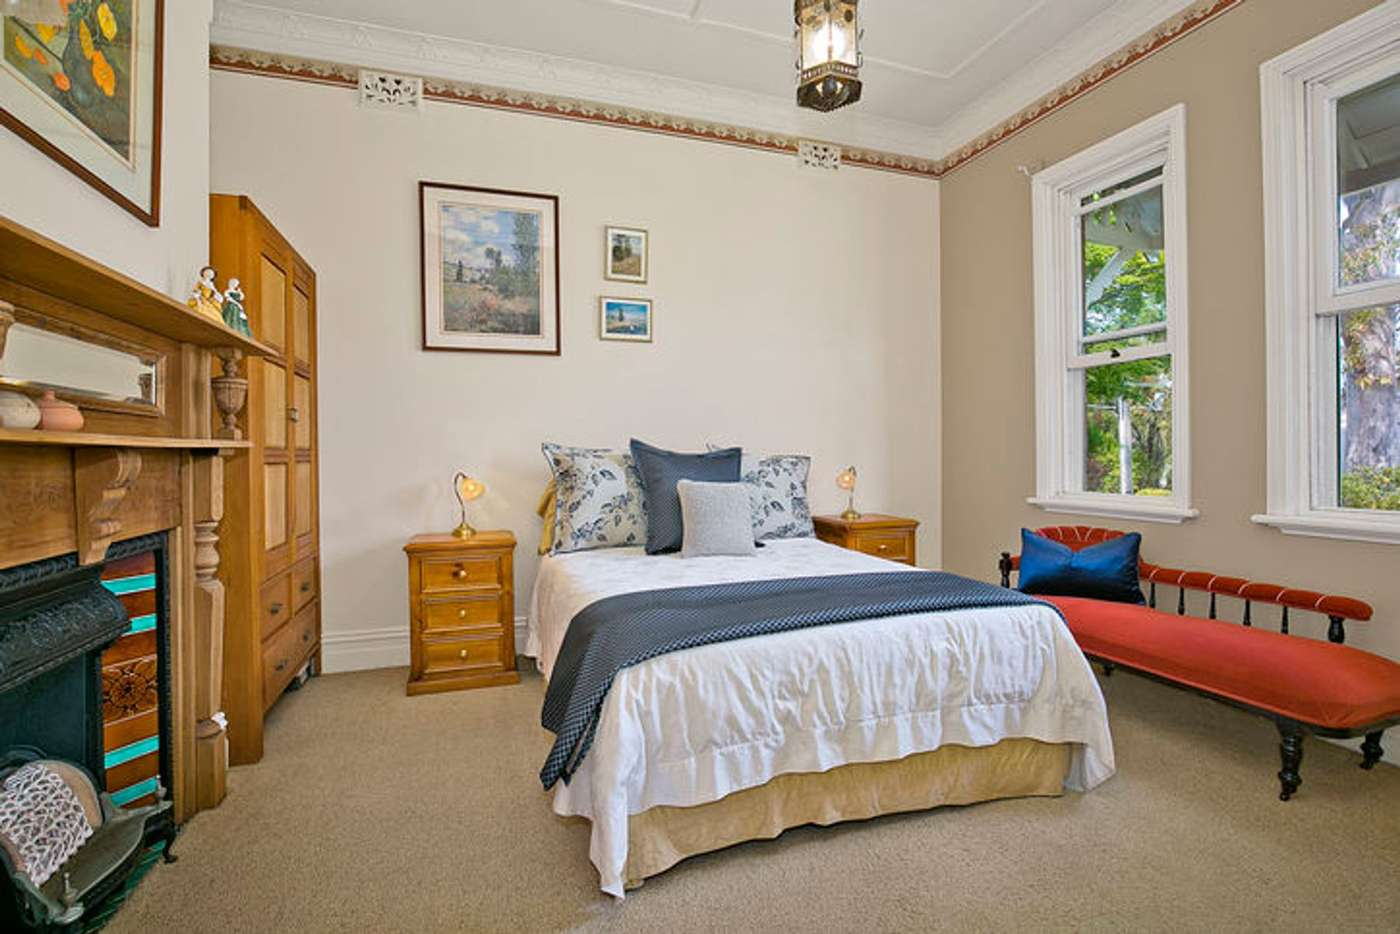 Fifth view of Homely house listing, 31 Surrey Street, Epping NSW 2121